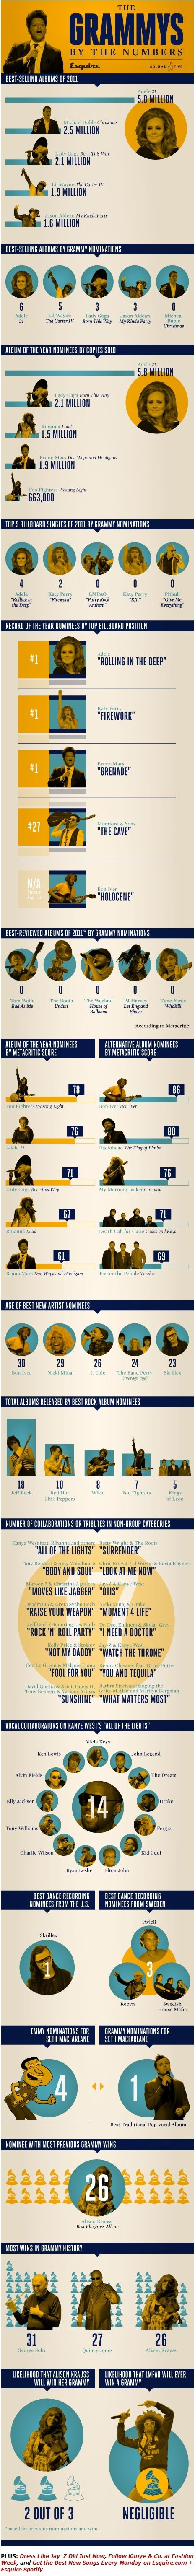 Grammy's by the Numbers (infographic)